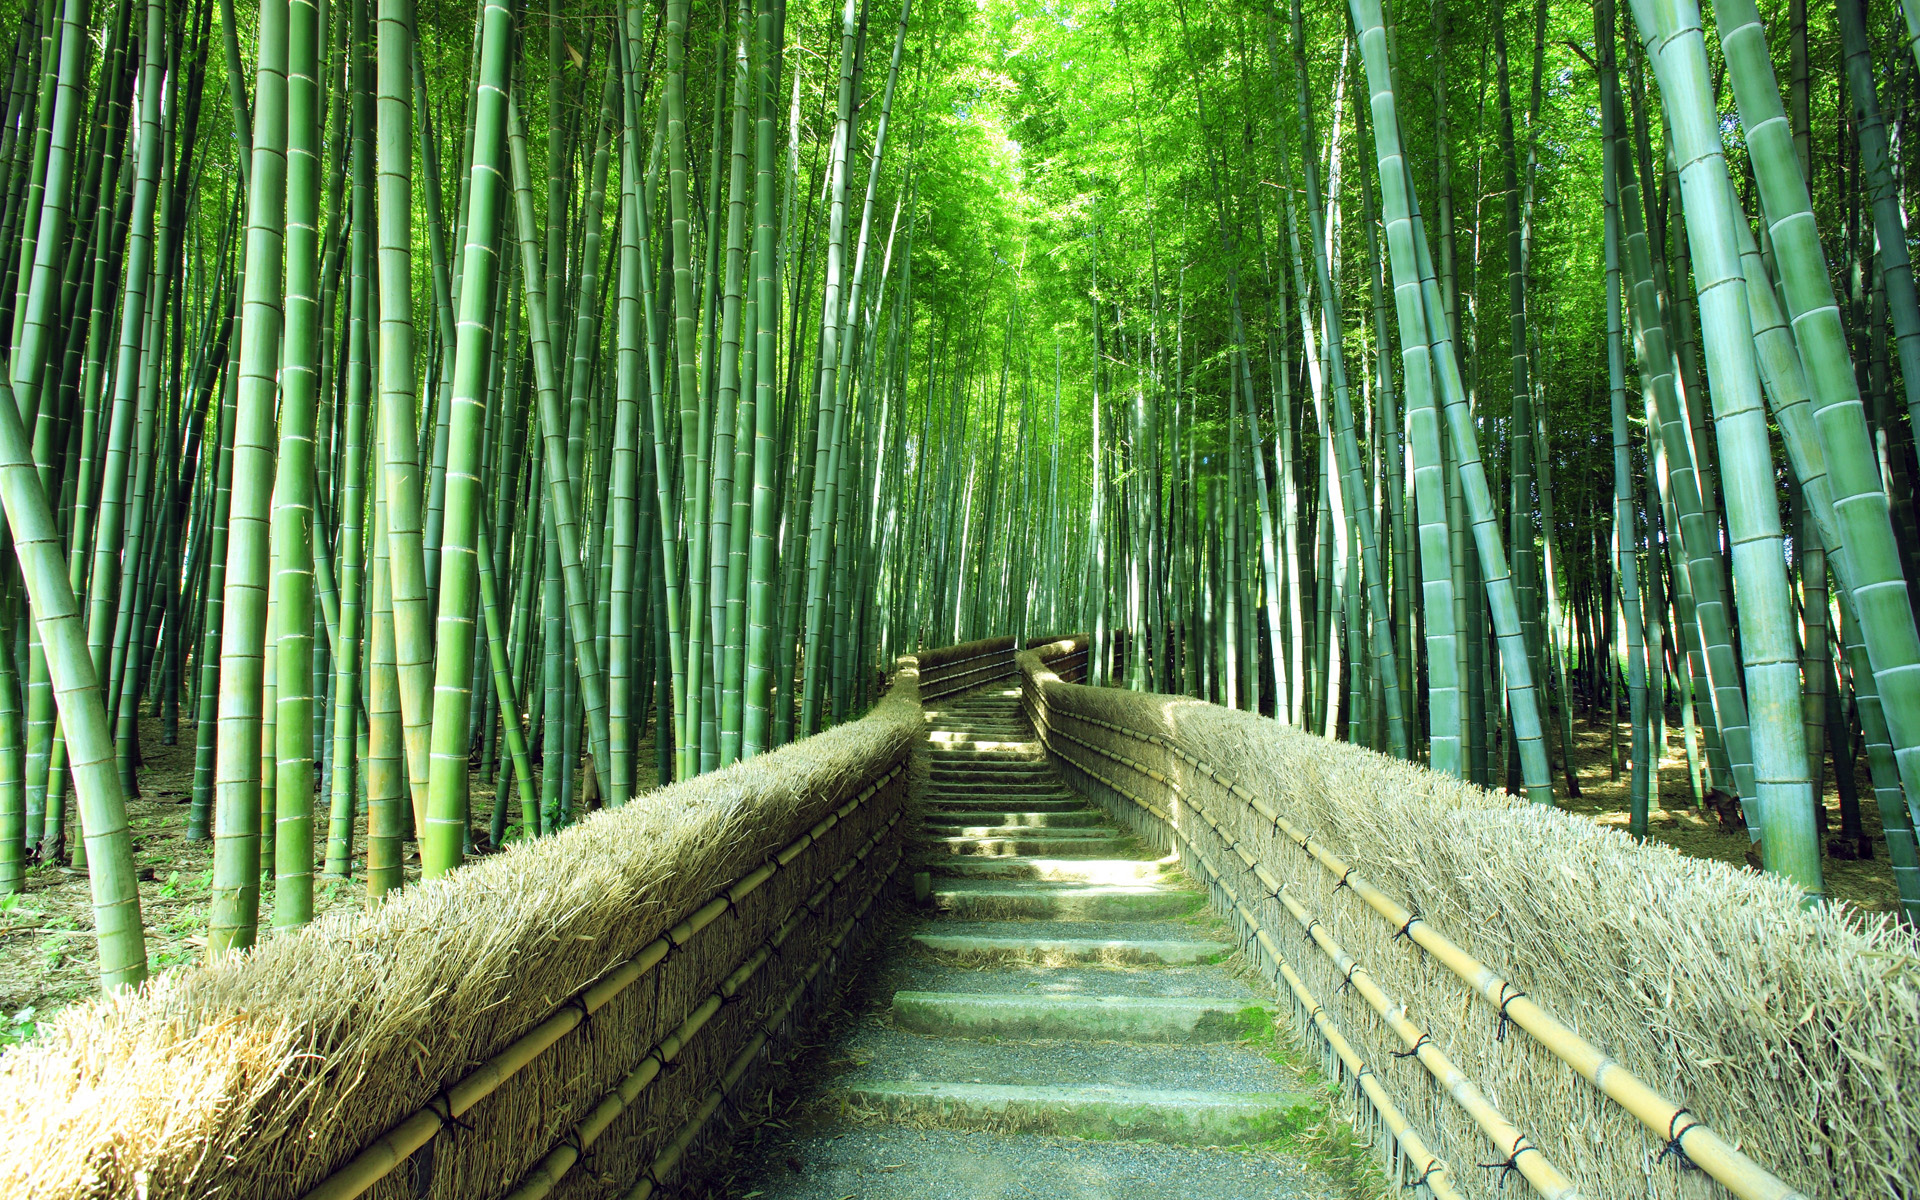 Footpath in Sagano bamboo forest, Kyoto, Japan